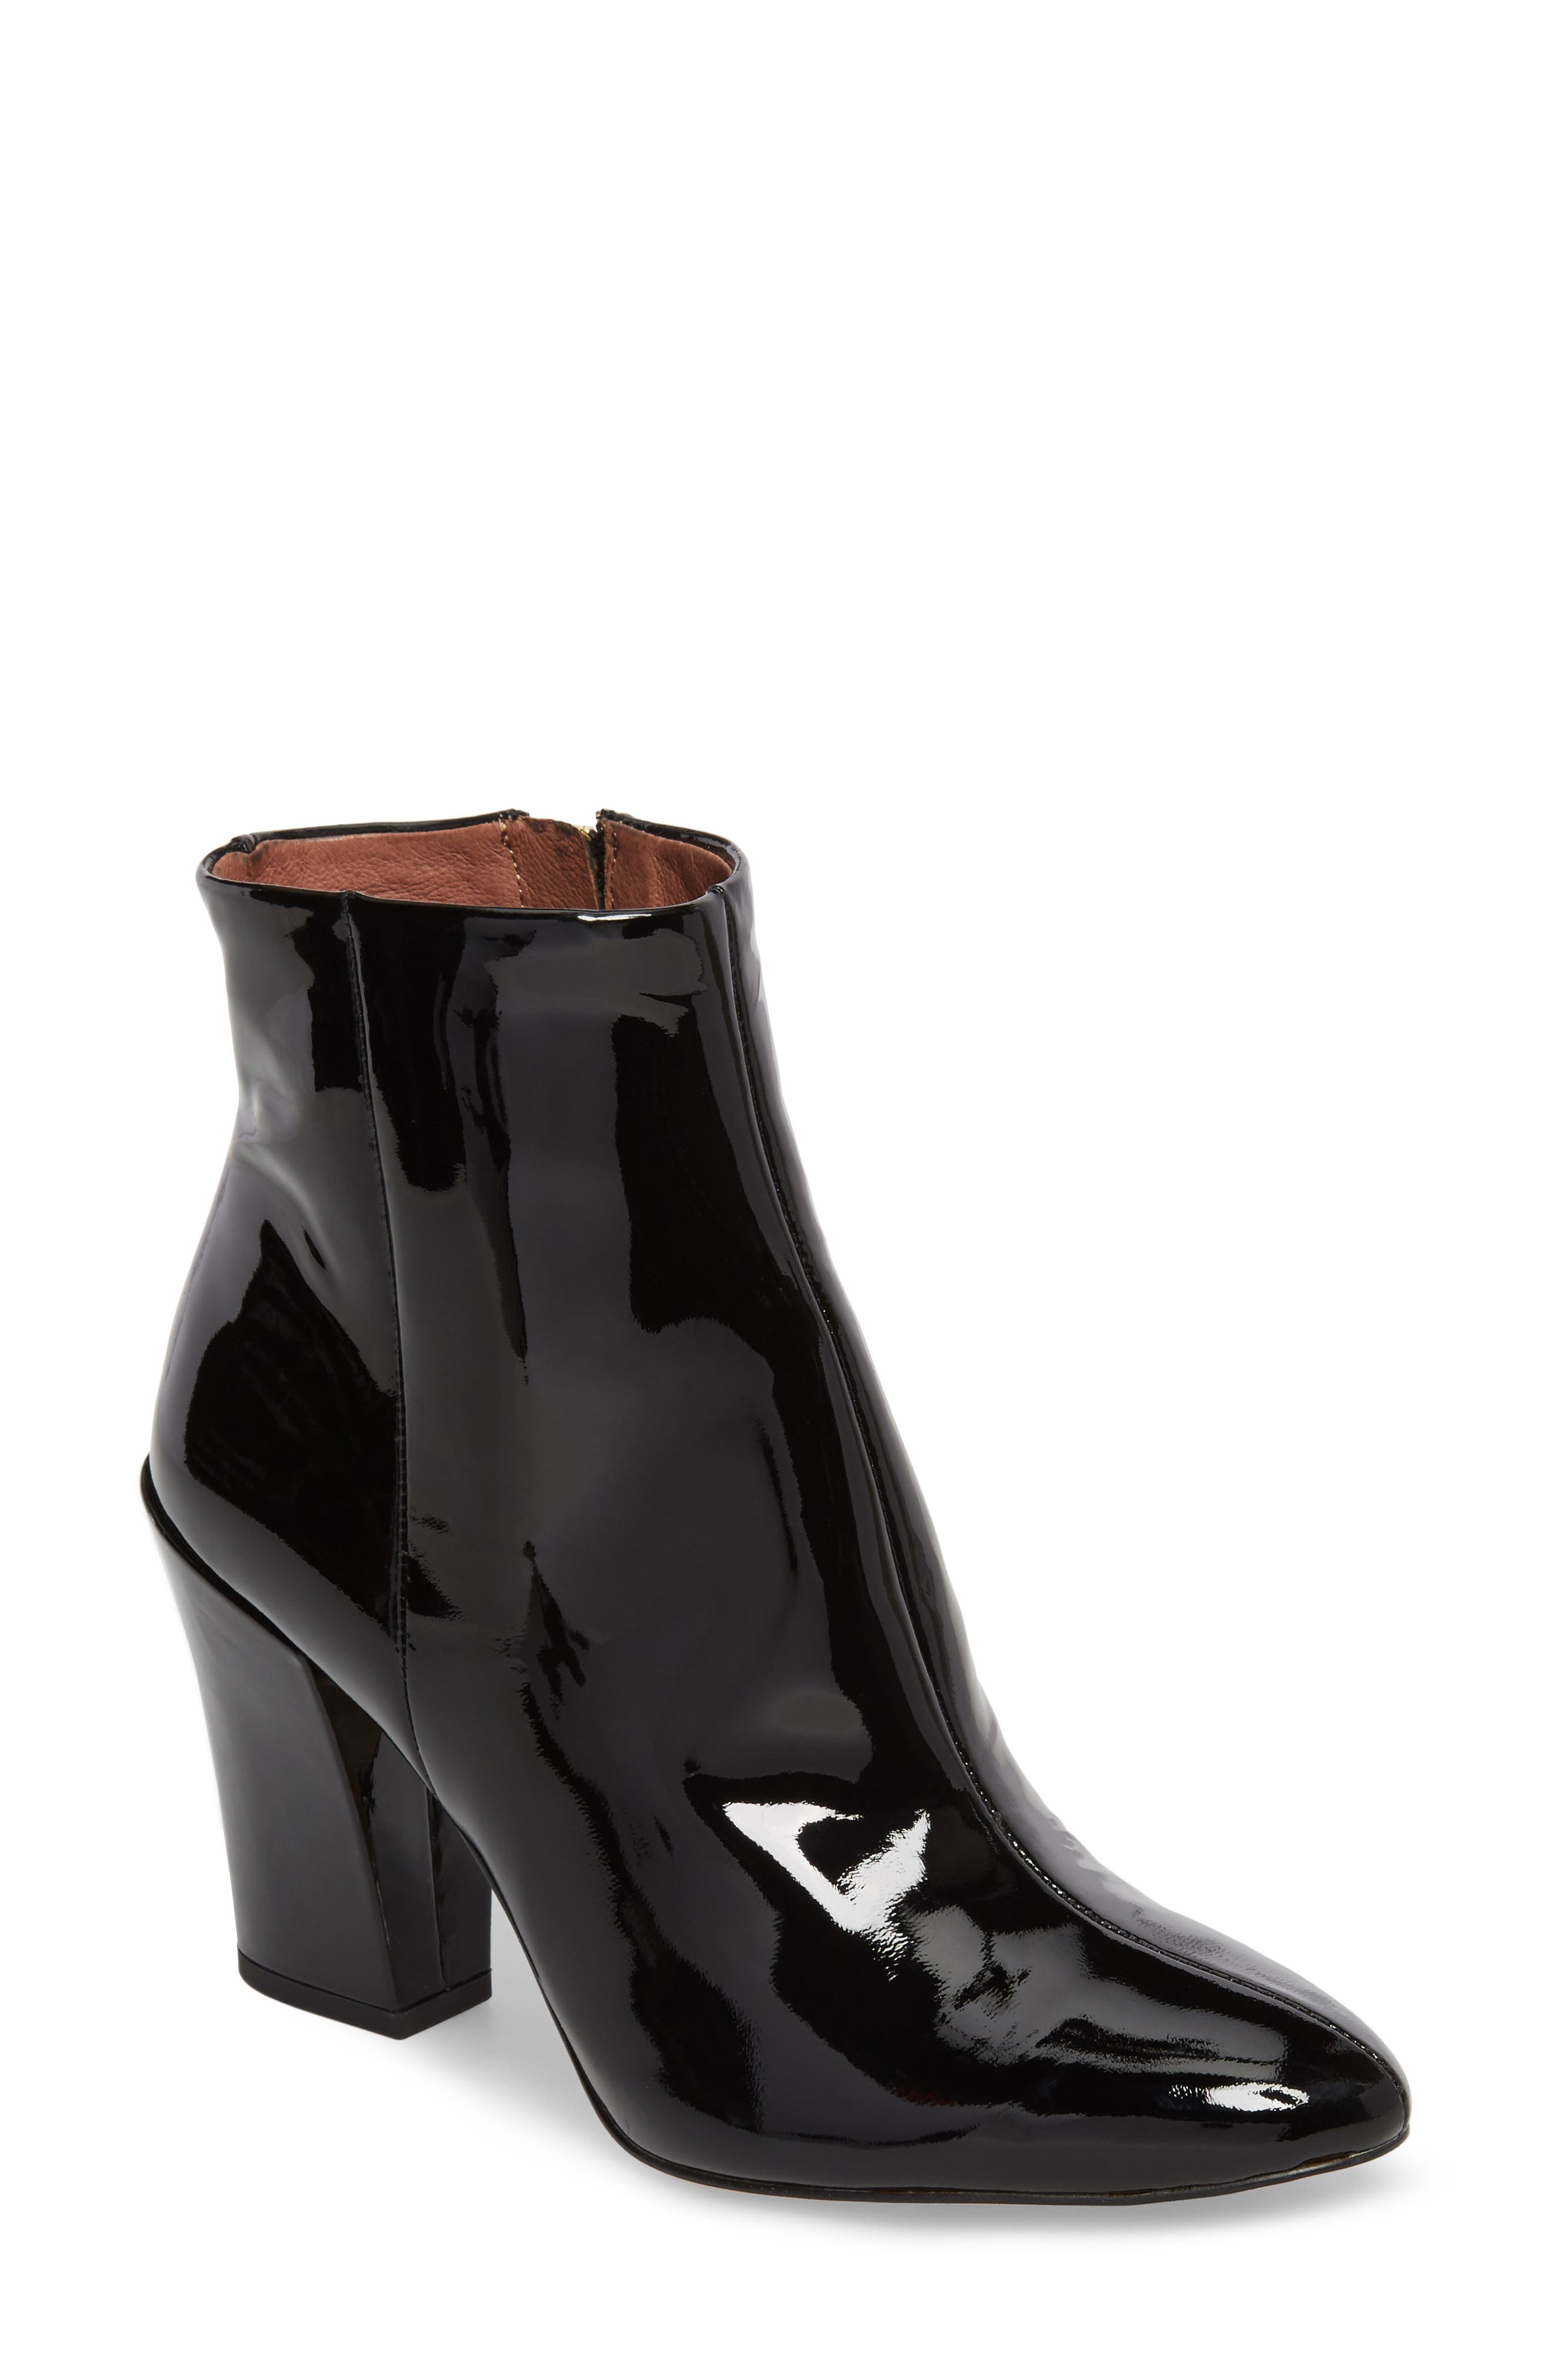 Alternate Image 1 Selected - Louise et Cie Verdana Bootie (Women)